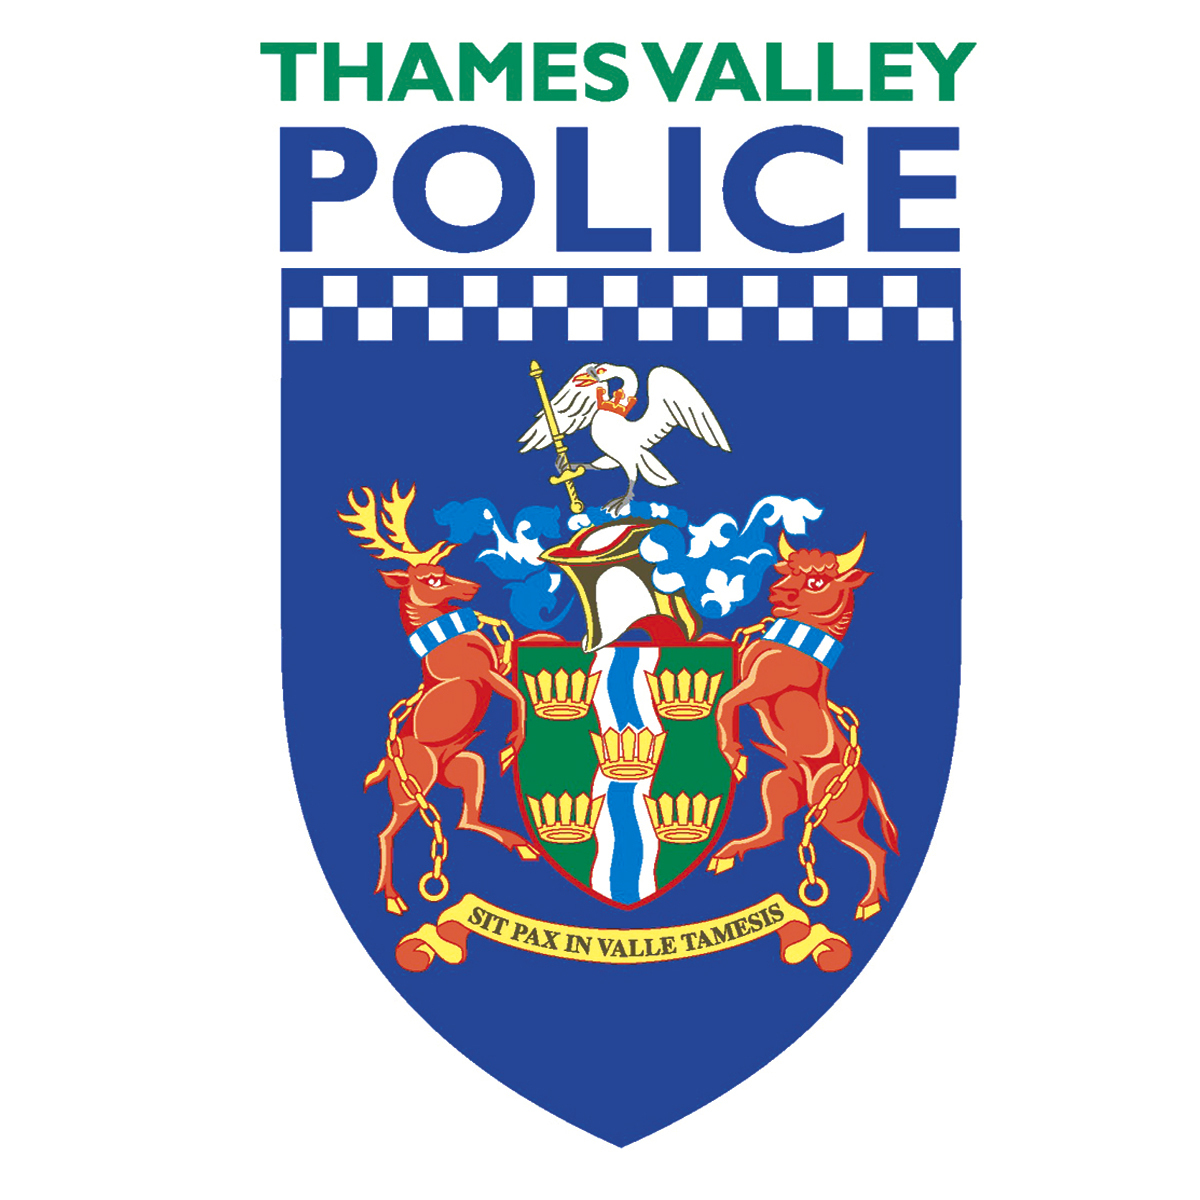 Thames Valley Police.